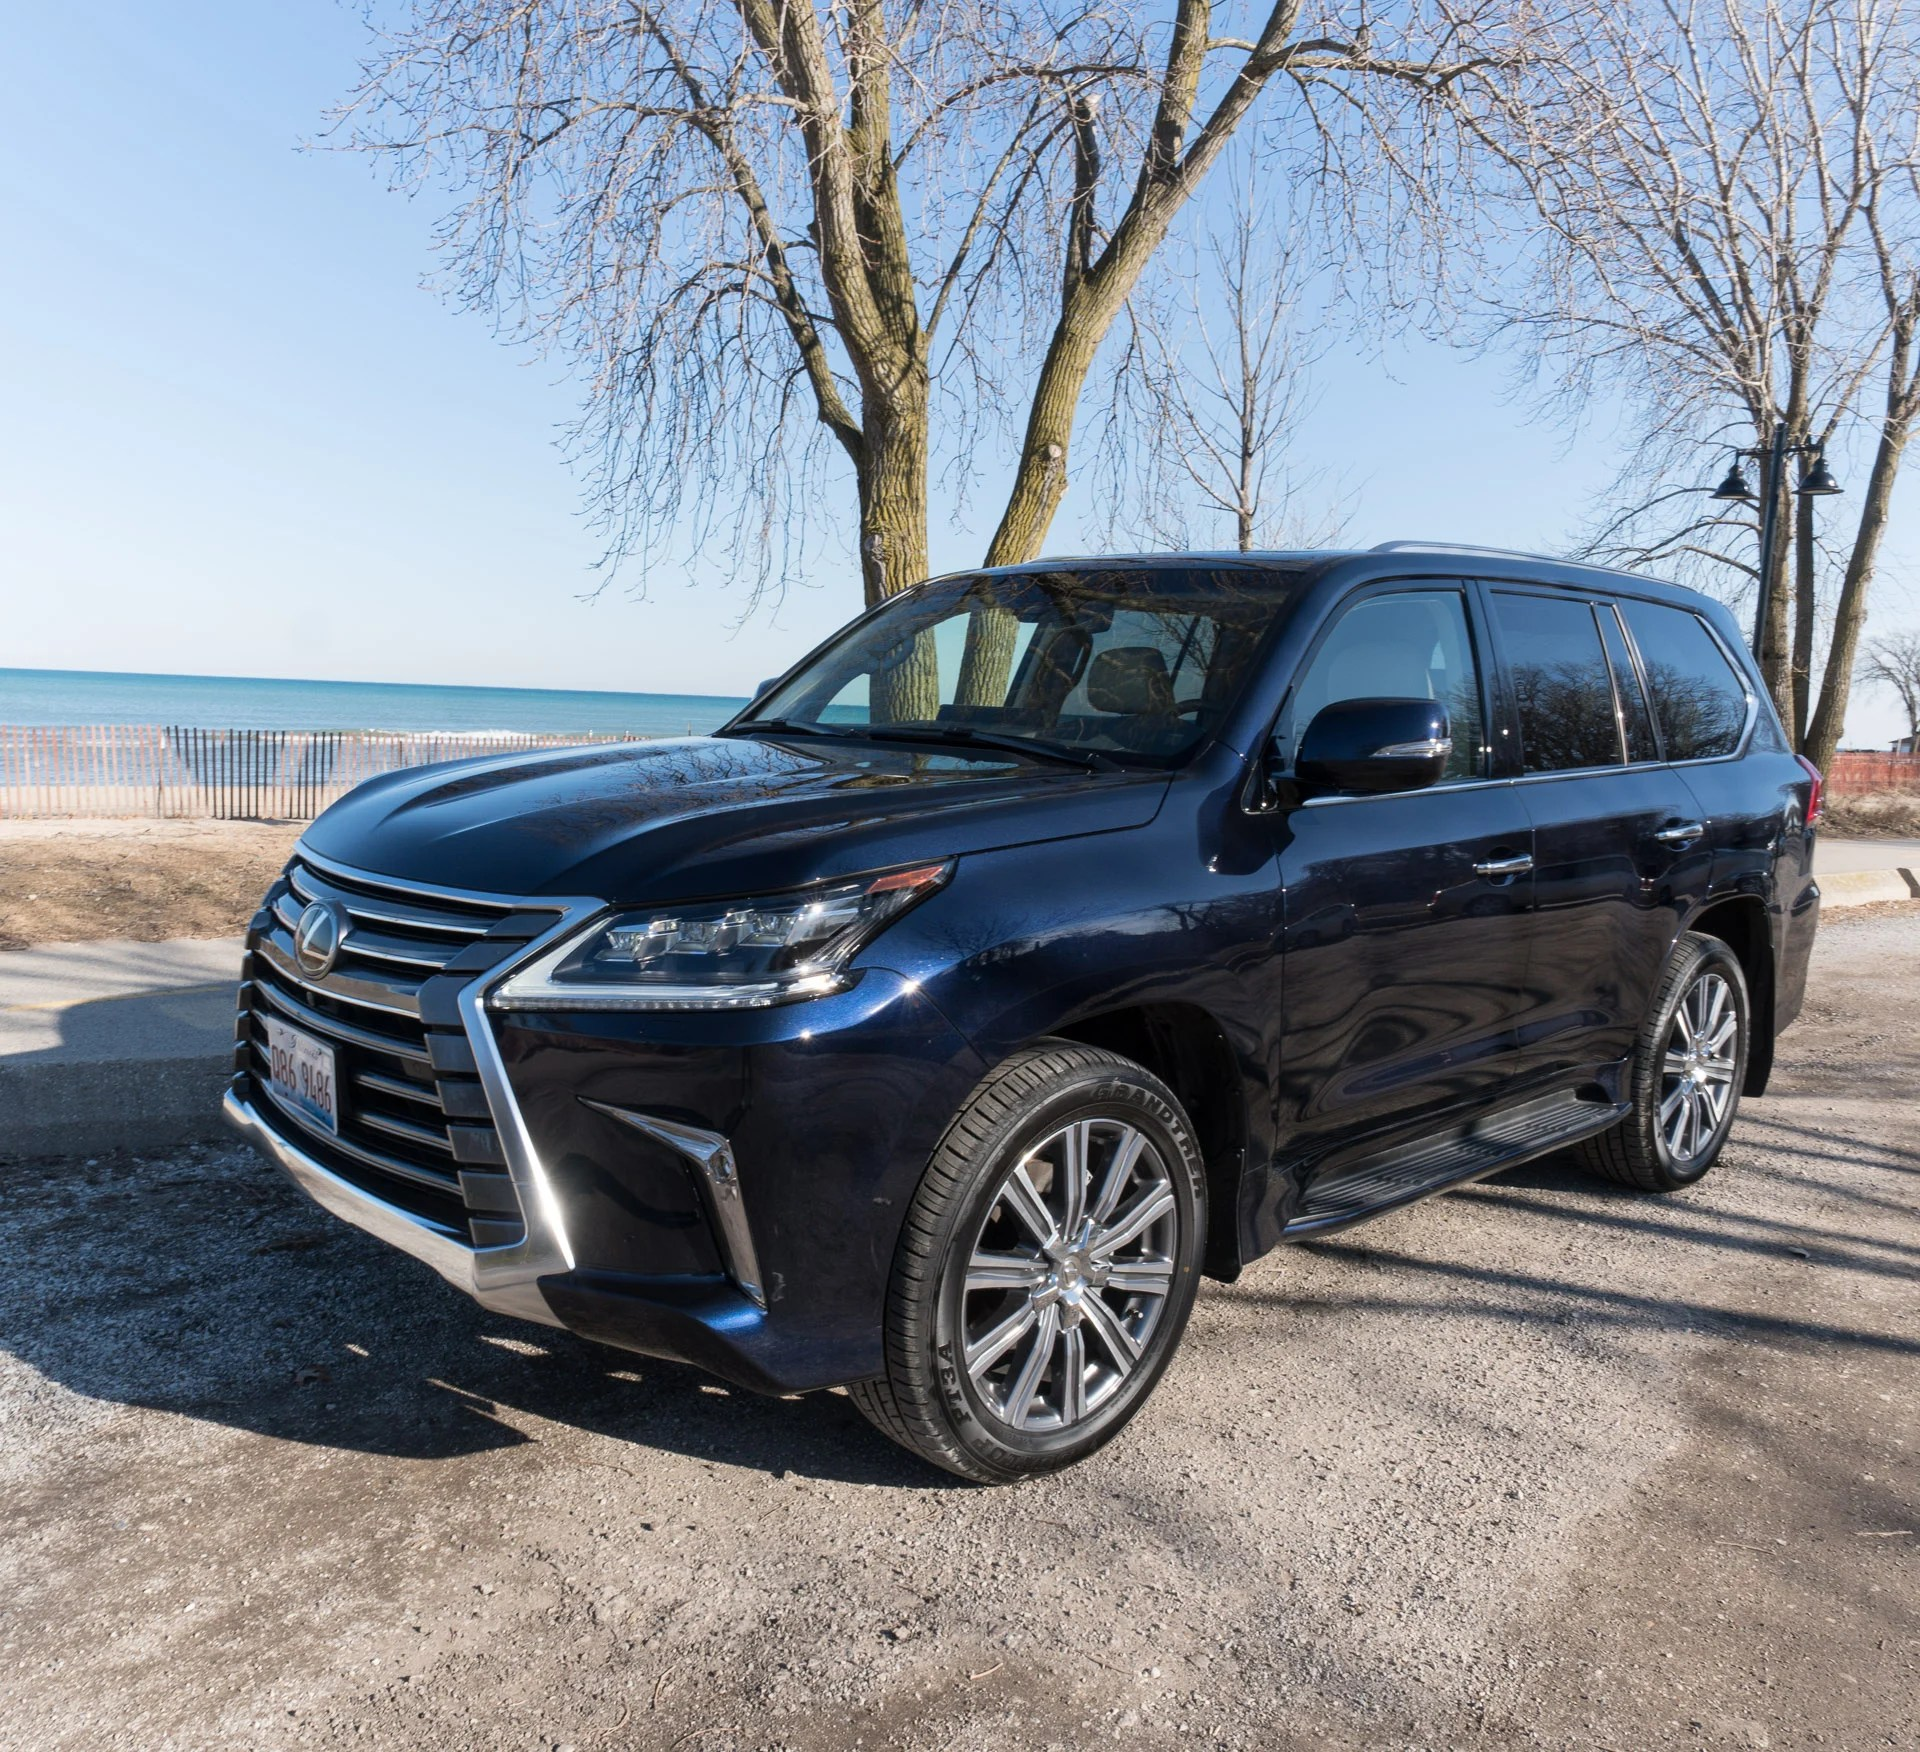 2017 Lexus Lx 570 Review  95 Octane